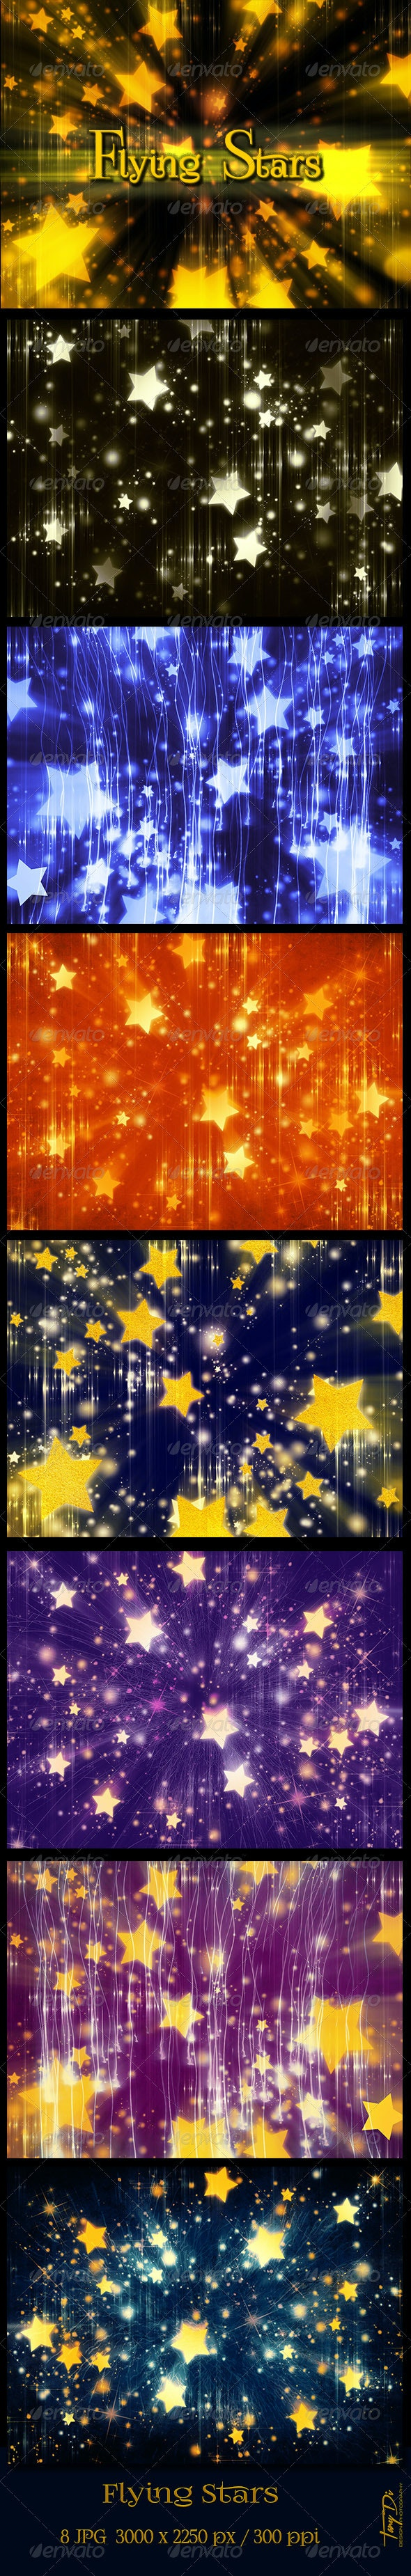 Flying Stars Festive Backgrounds - Miscellaneous Backgrounds